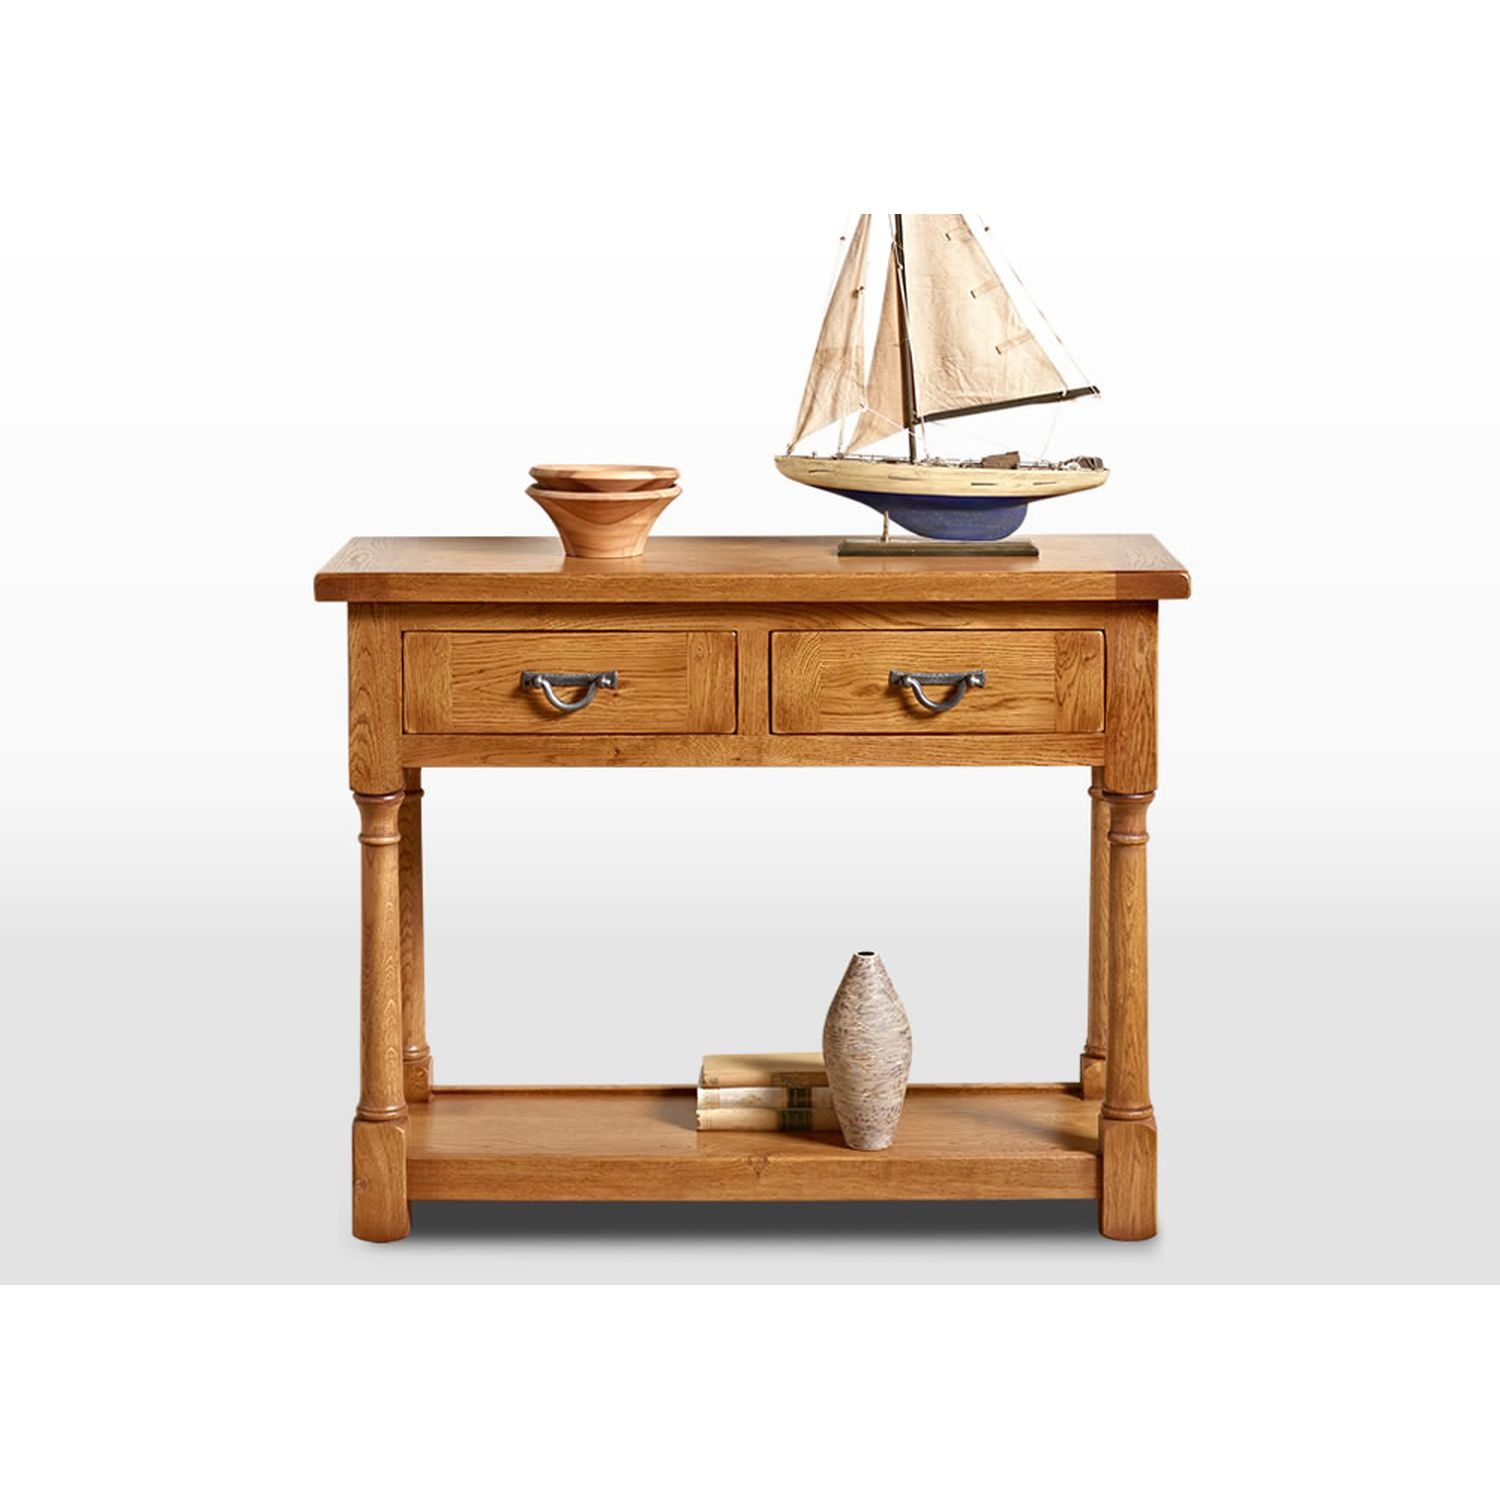 Image of Wood Bros Chatsworth Console Table